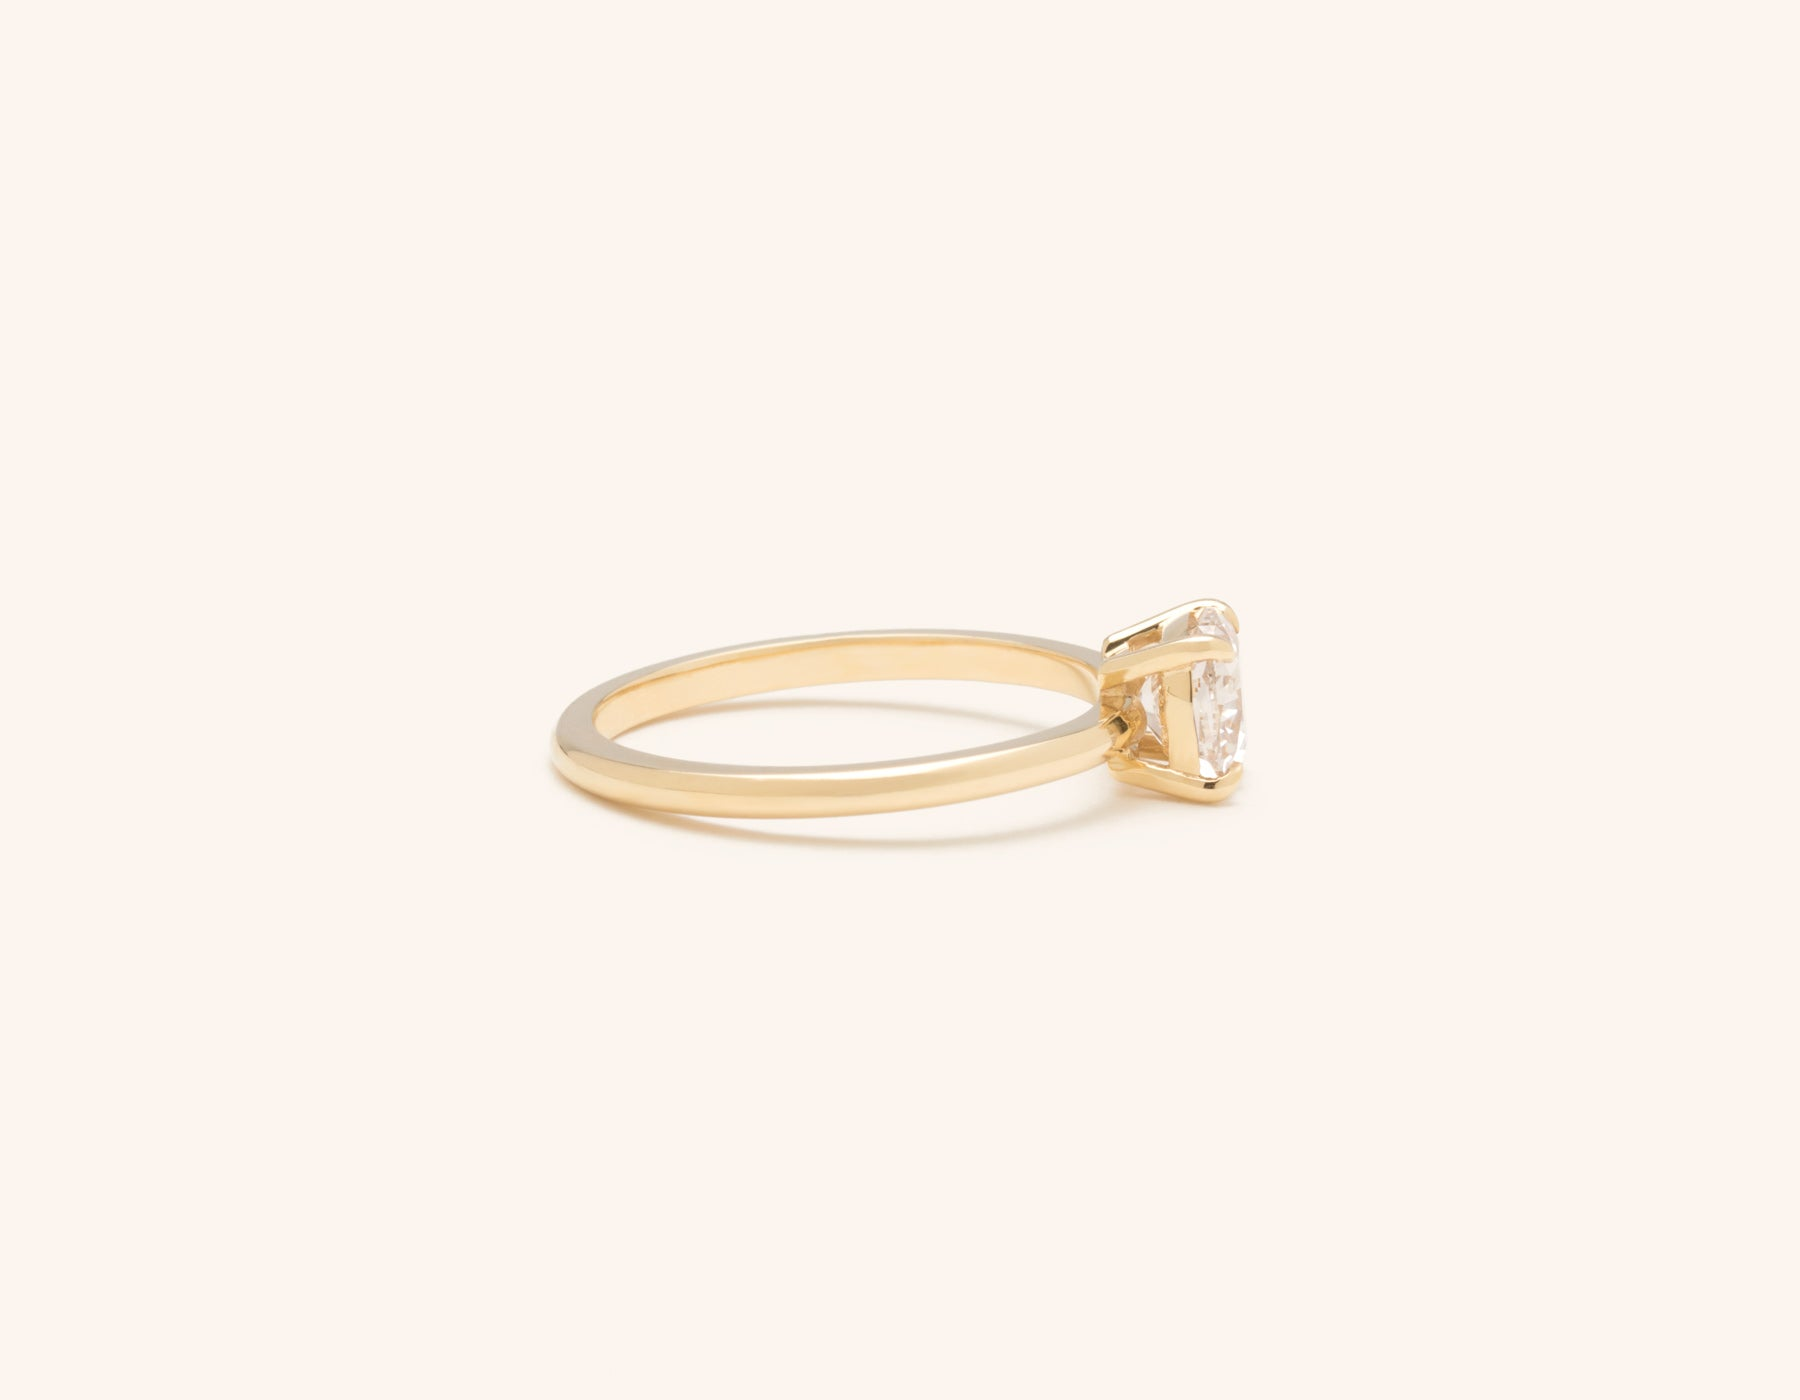 Simple modern 18k solid yellow gold 1 carat Cushion diamond engagement ring Vrai & Oro